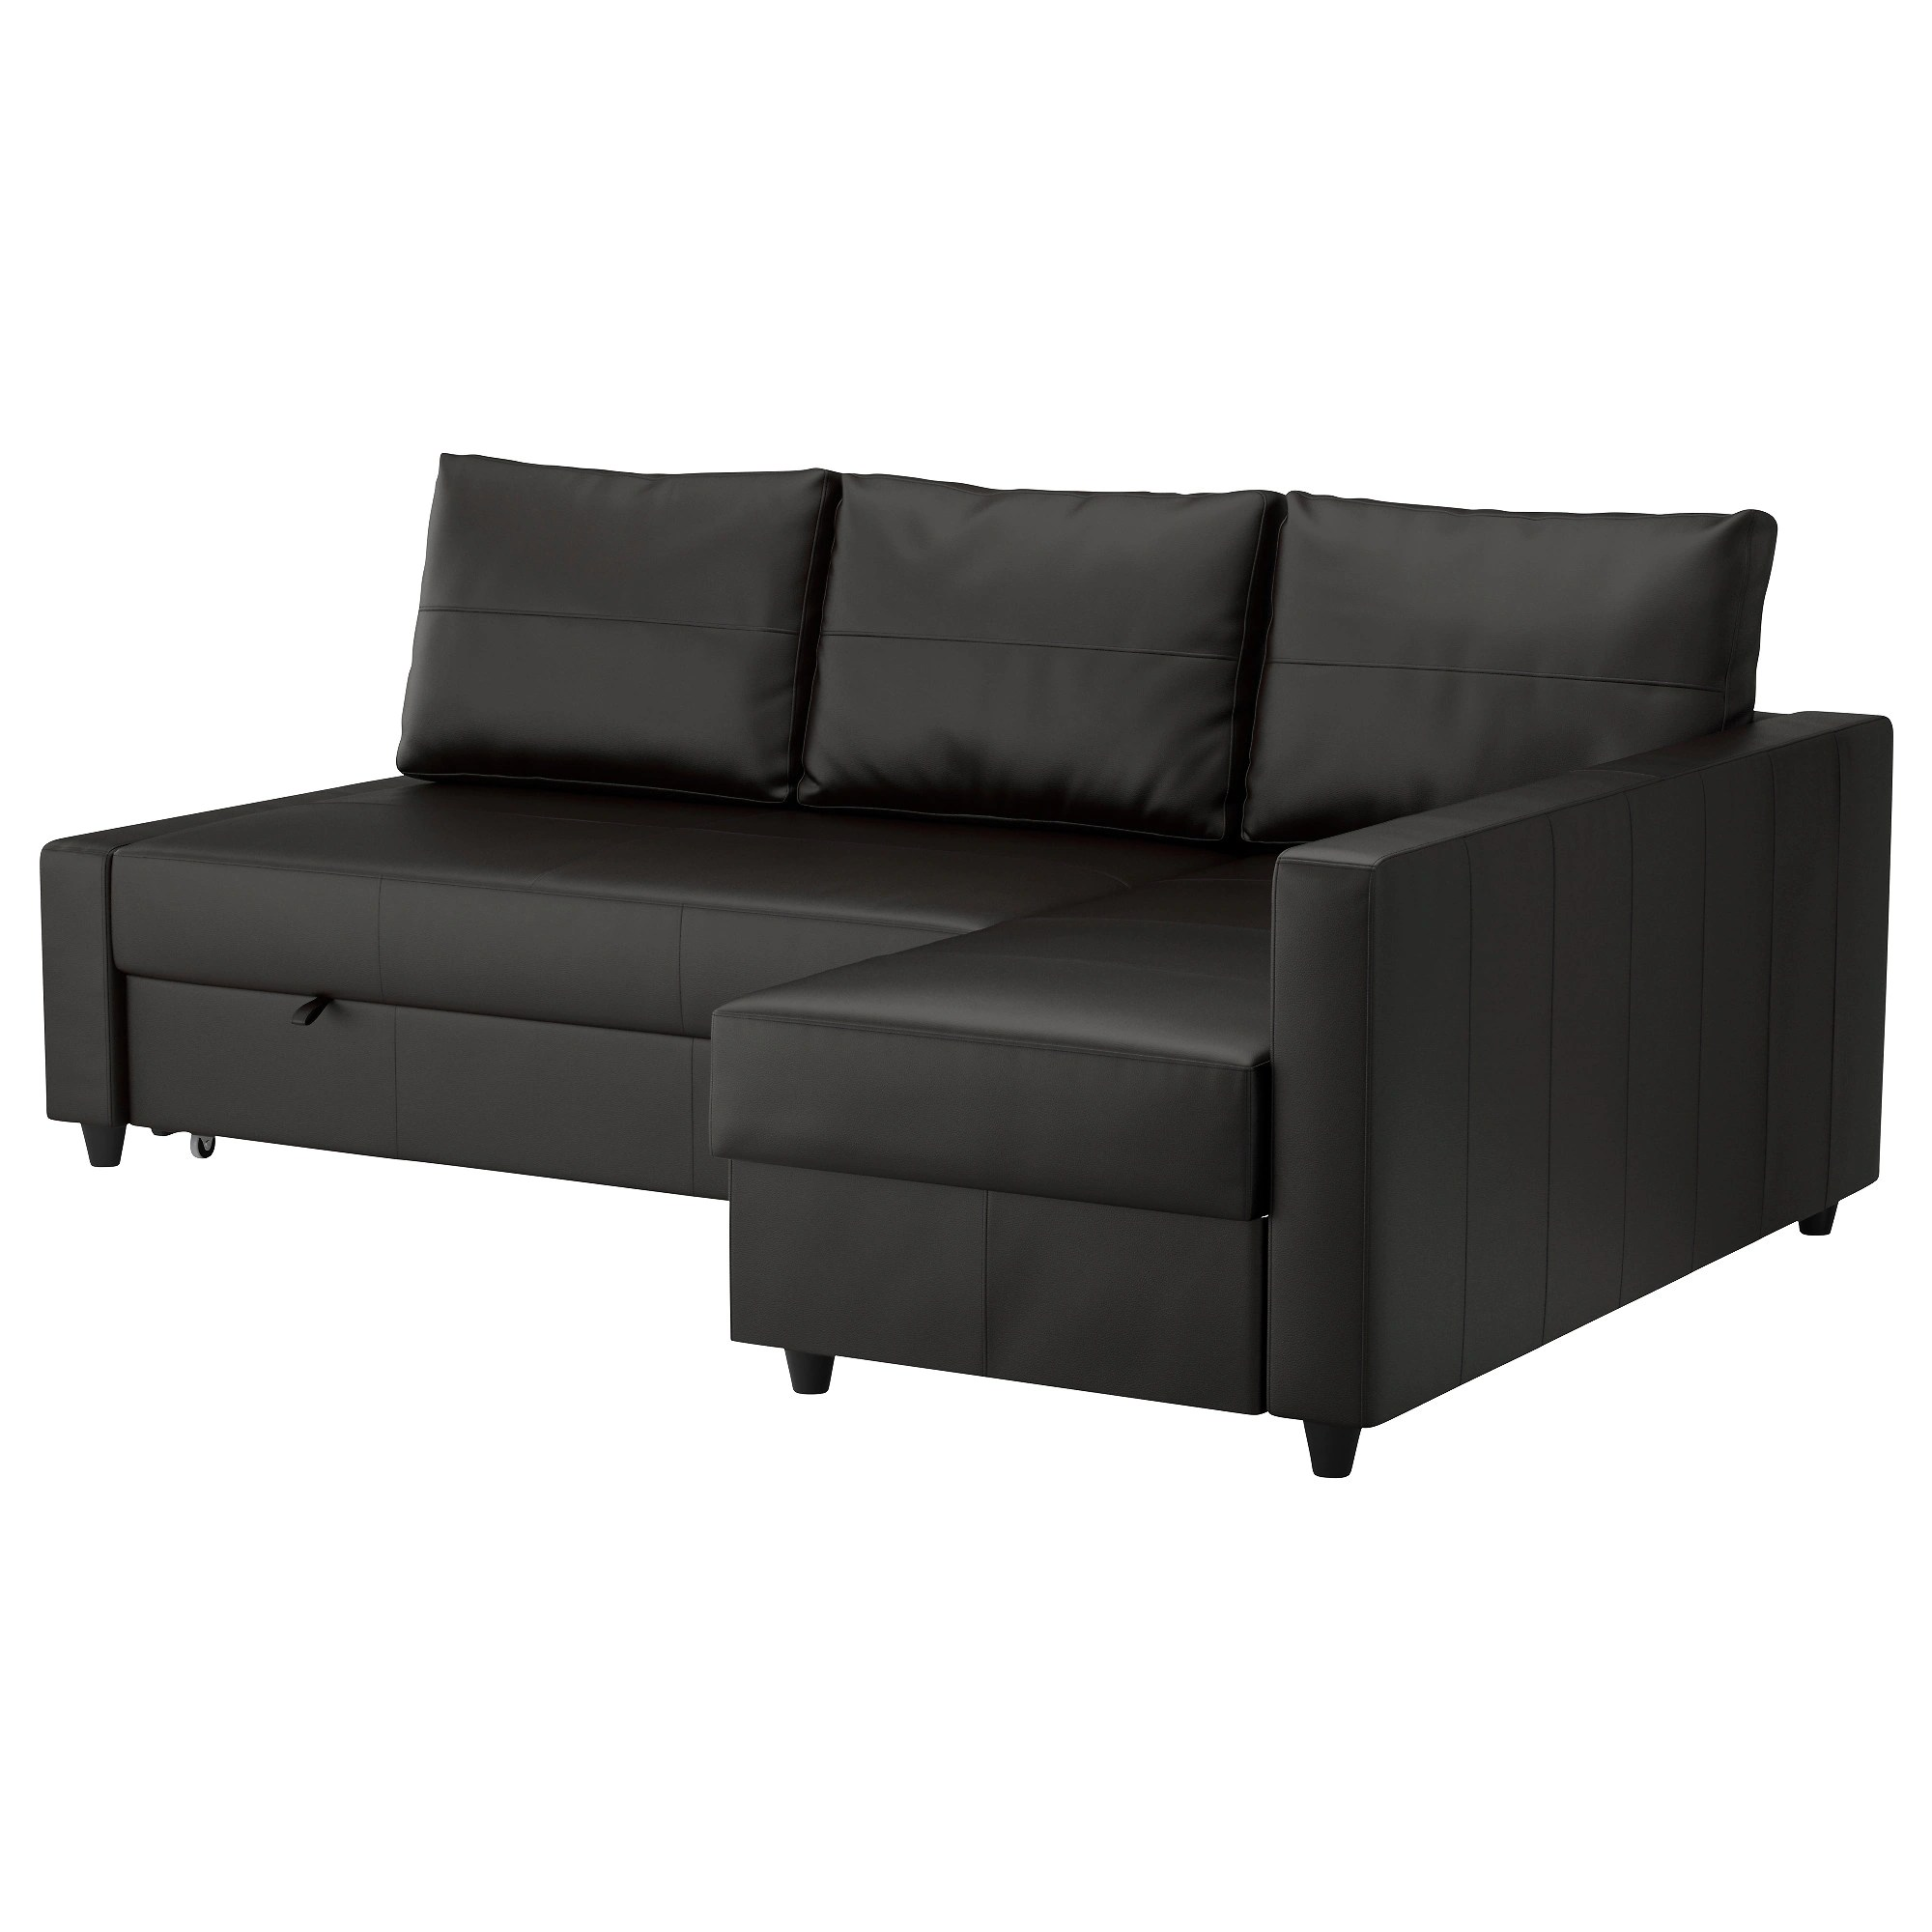 Sofa Bed For Sale Toronto Friheten Corner Sofa Bed With Storage Bomstad Black